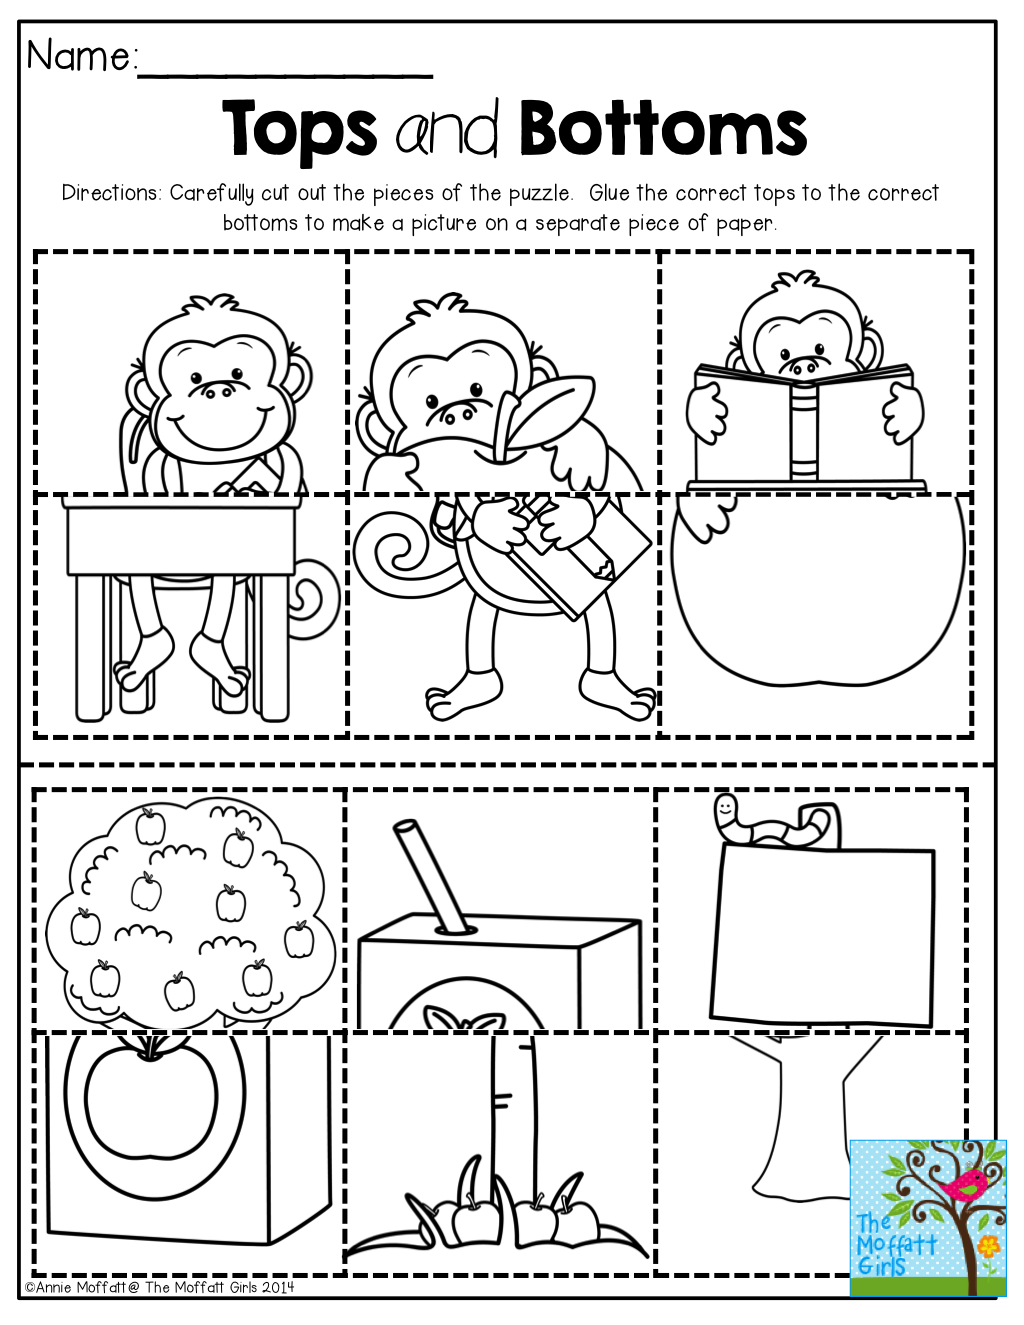 Tops and Bottoms Puzzles! Cut out the pieces and match the tops to ...